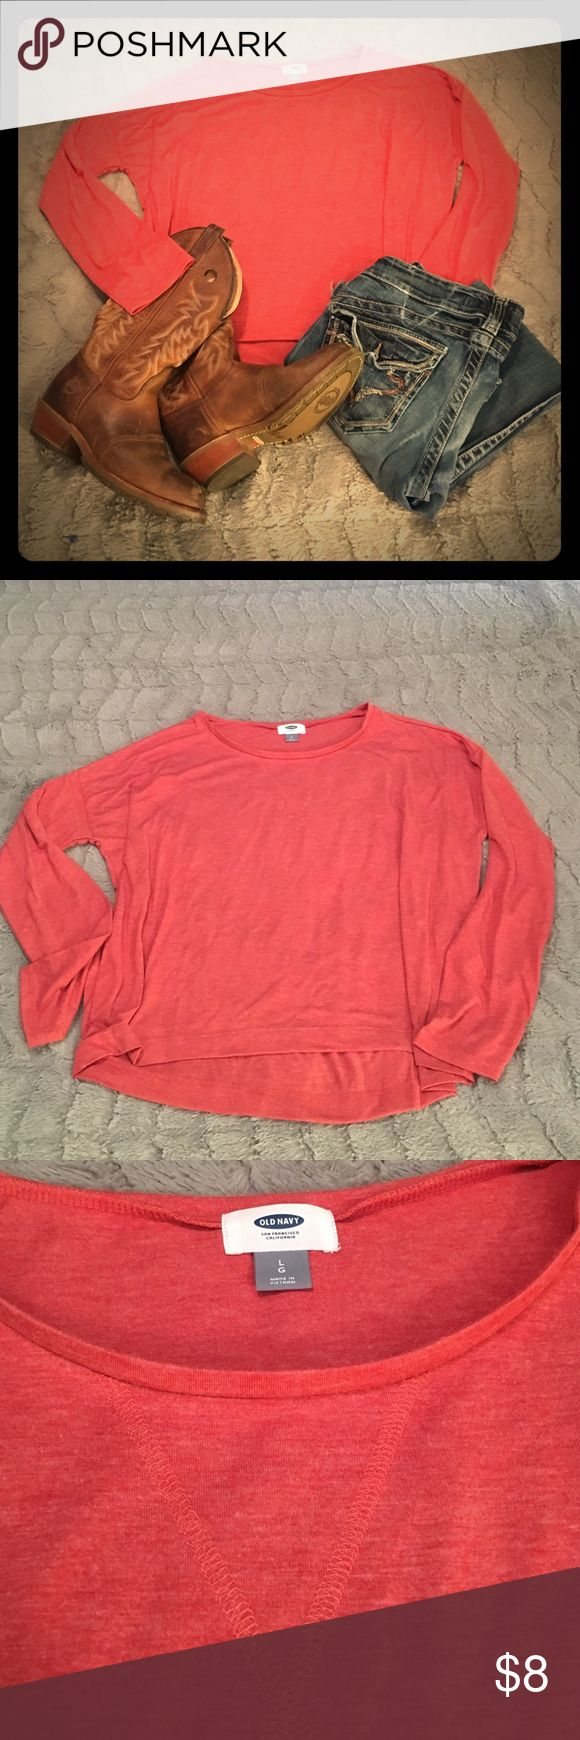 Old Navy, Orange, Long Sleeve Top Burnt orange, long sleeve shirt. Slight high-low top. Excellent condition and really cute. Old Navy Tops Tees - Long Sleeve